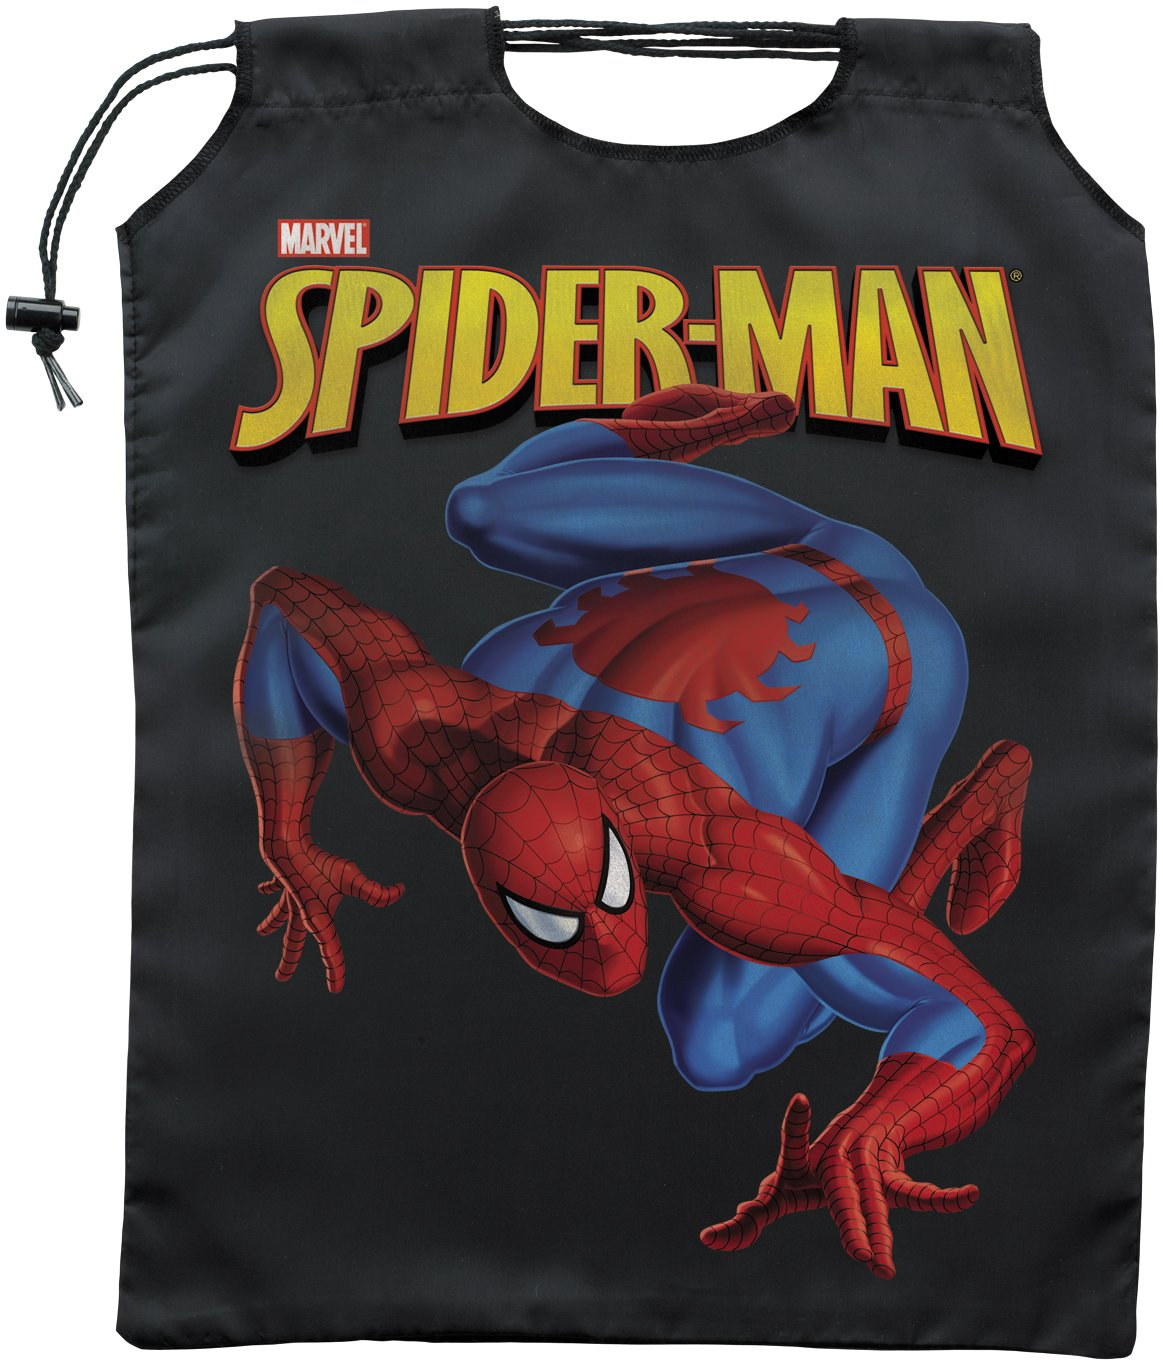 Spider-Man - Drawstring Treat Sack